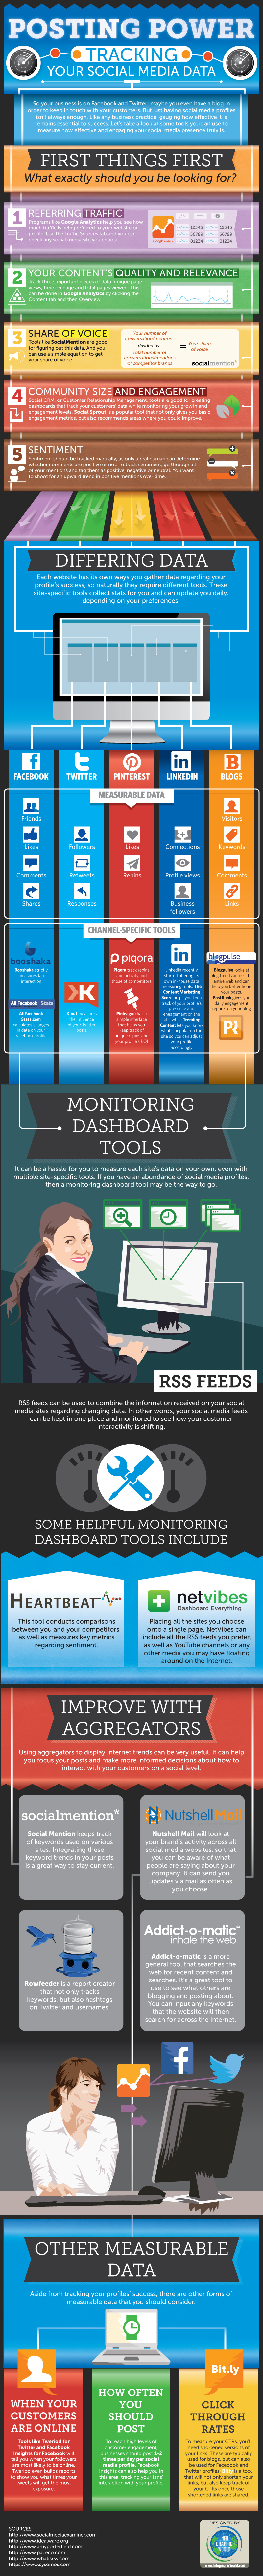 Infographic: Posting Power - Tracking Your Social Media Data